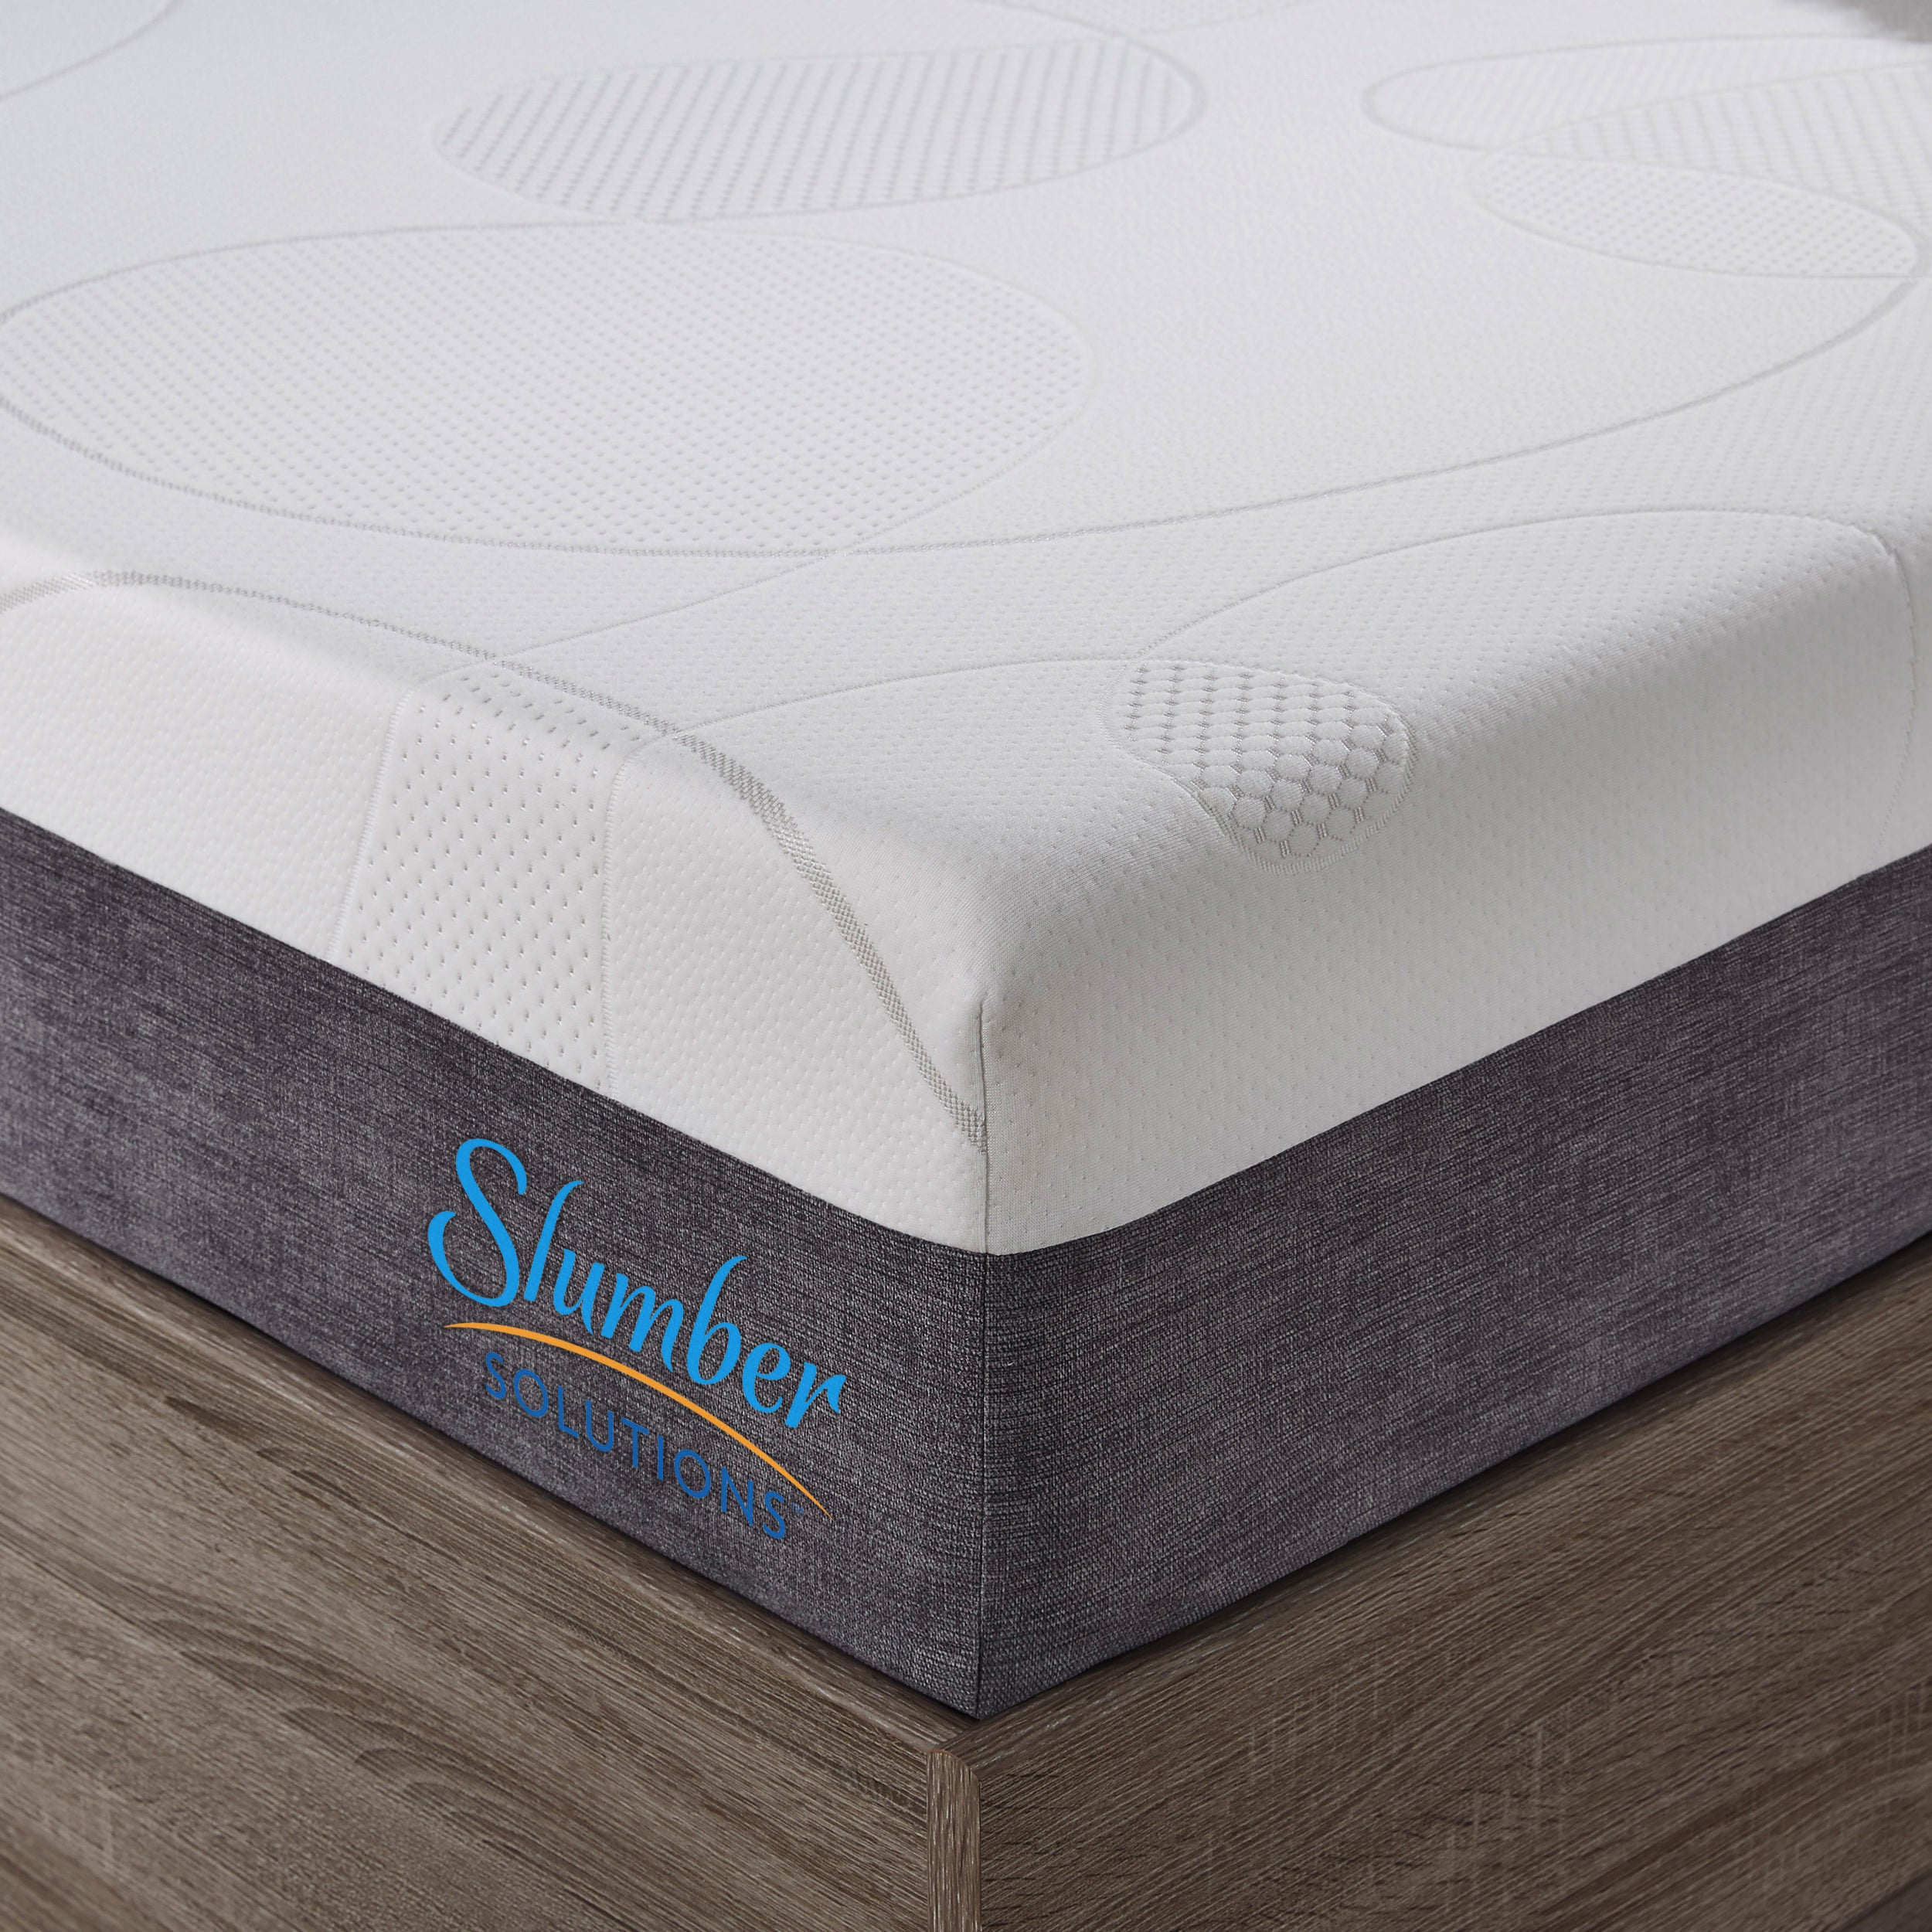 kings of adventure foam size inflating mattress king supacentre self